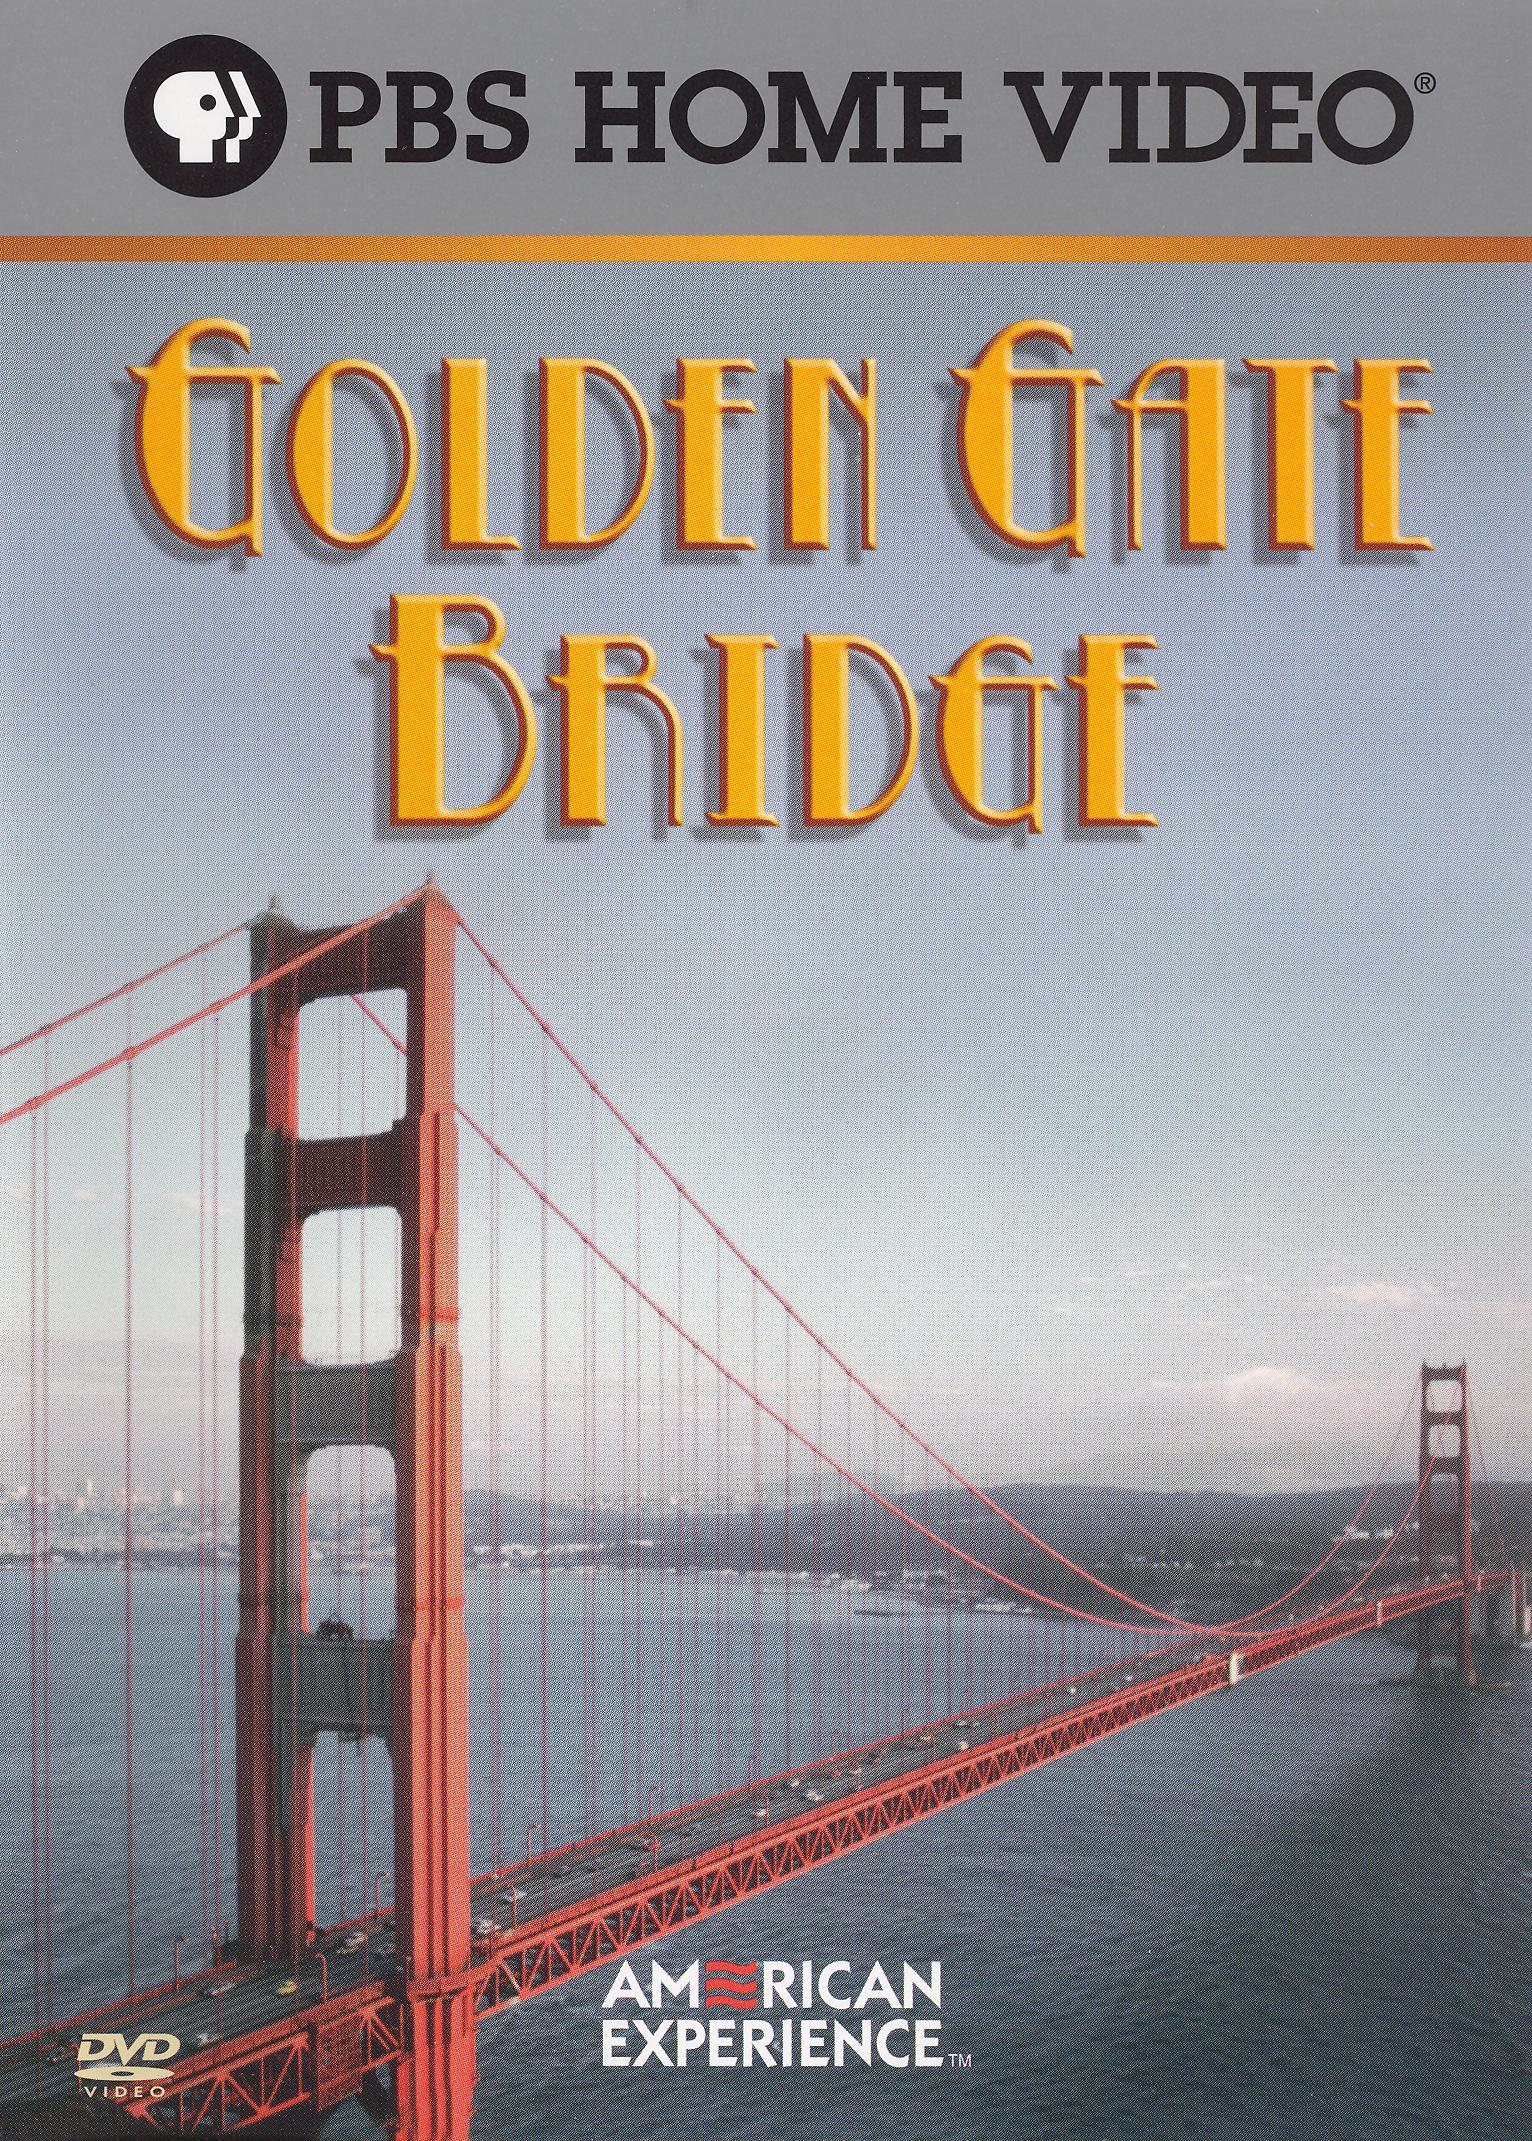 American Experience: The Golden Gate Bridge